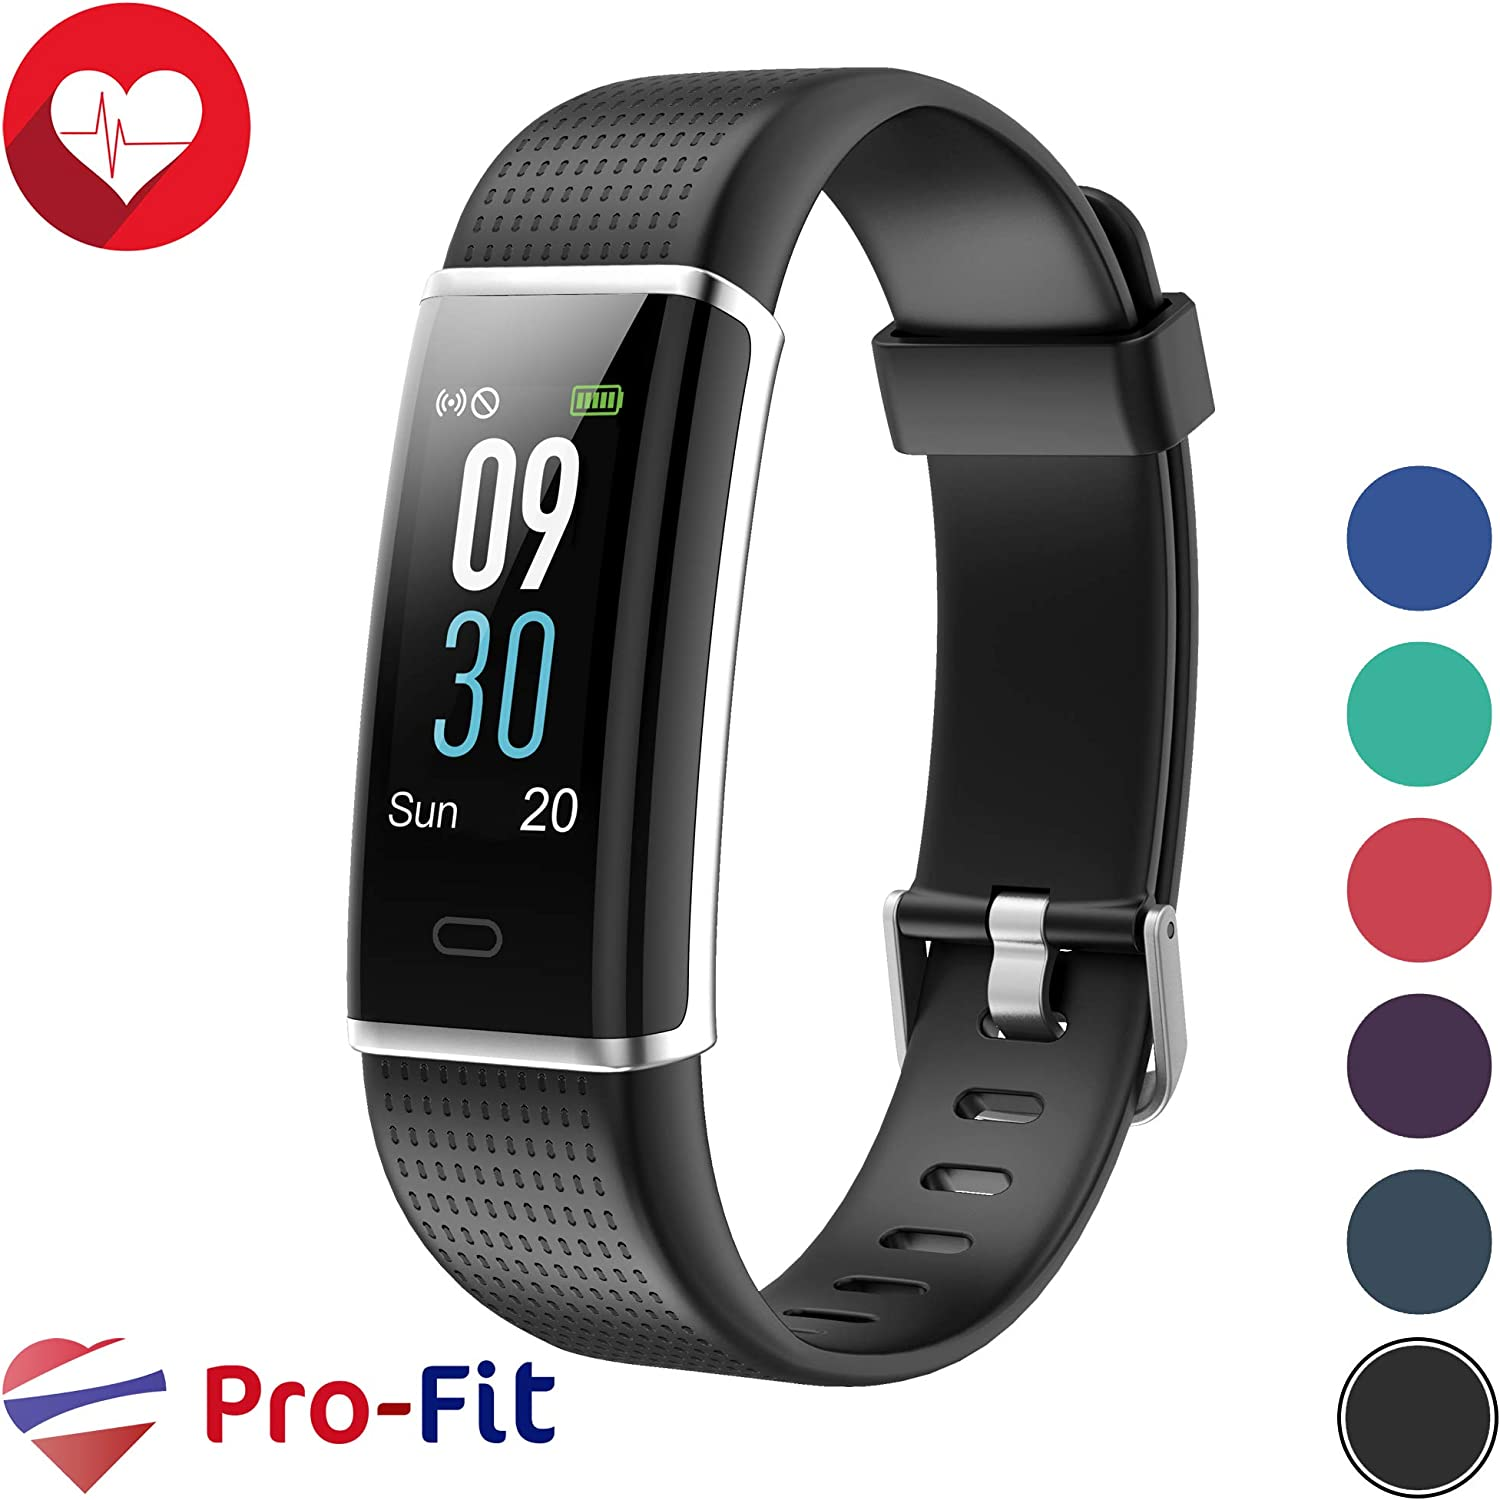 YAMAY Kids Fitness Tracker, Slim Kids Activity Tracker Fitness Watch Waterproof Pedometer Watch Step Counter Sleep Tracker Vibration Alarm Clocks for Boys Girls Women Men No Heart Rate Function